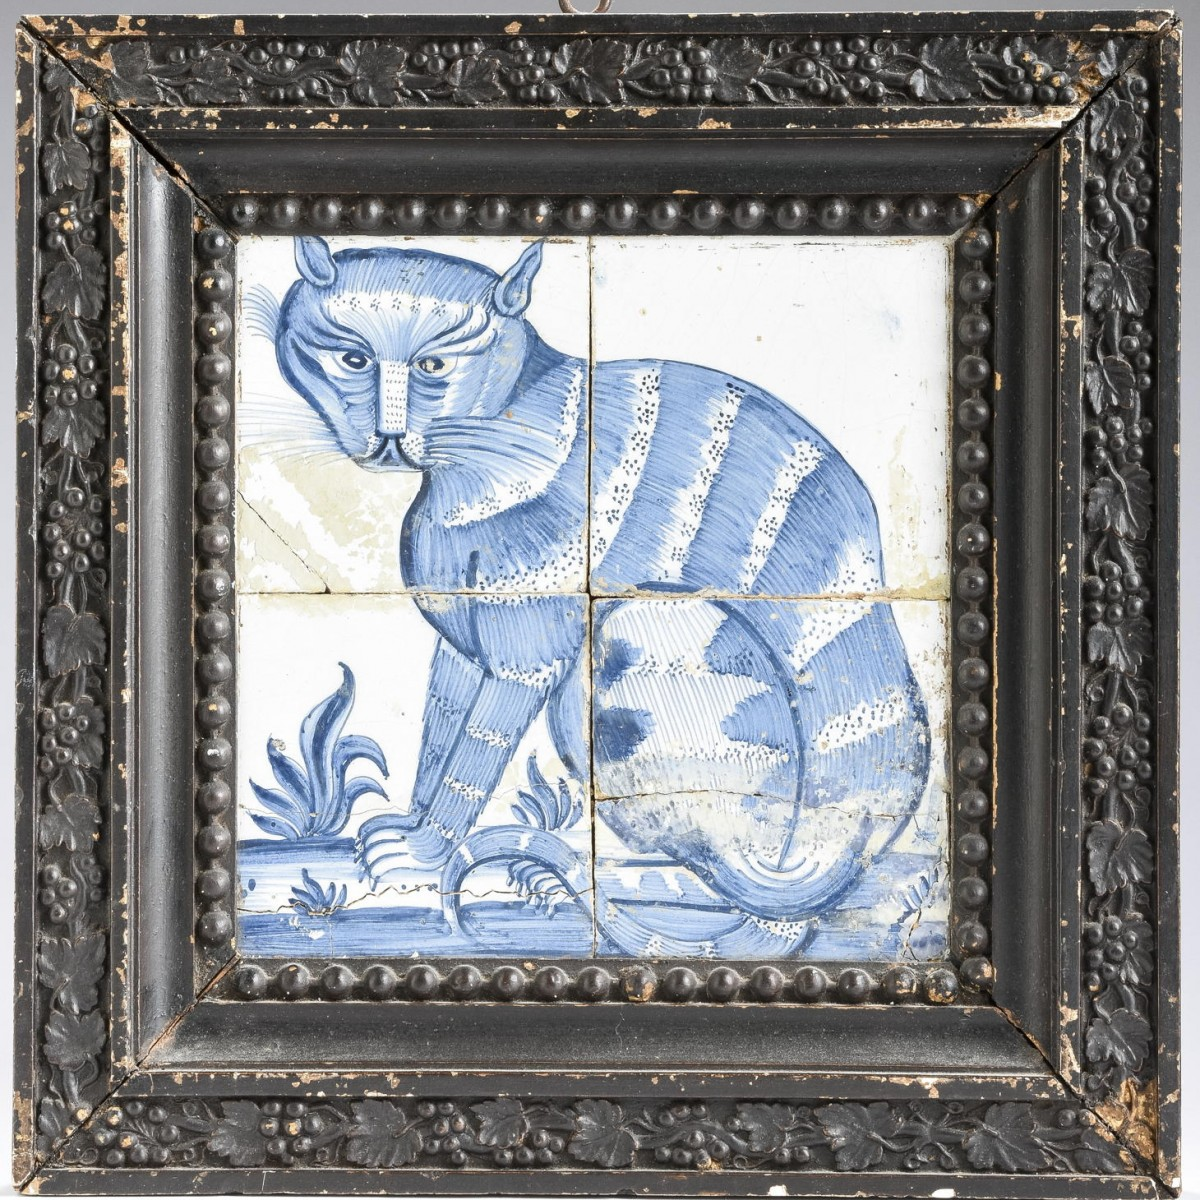 Pair Of Framed Dutch Delft Tile Pictures Of Seated Cats